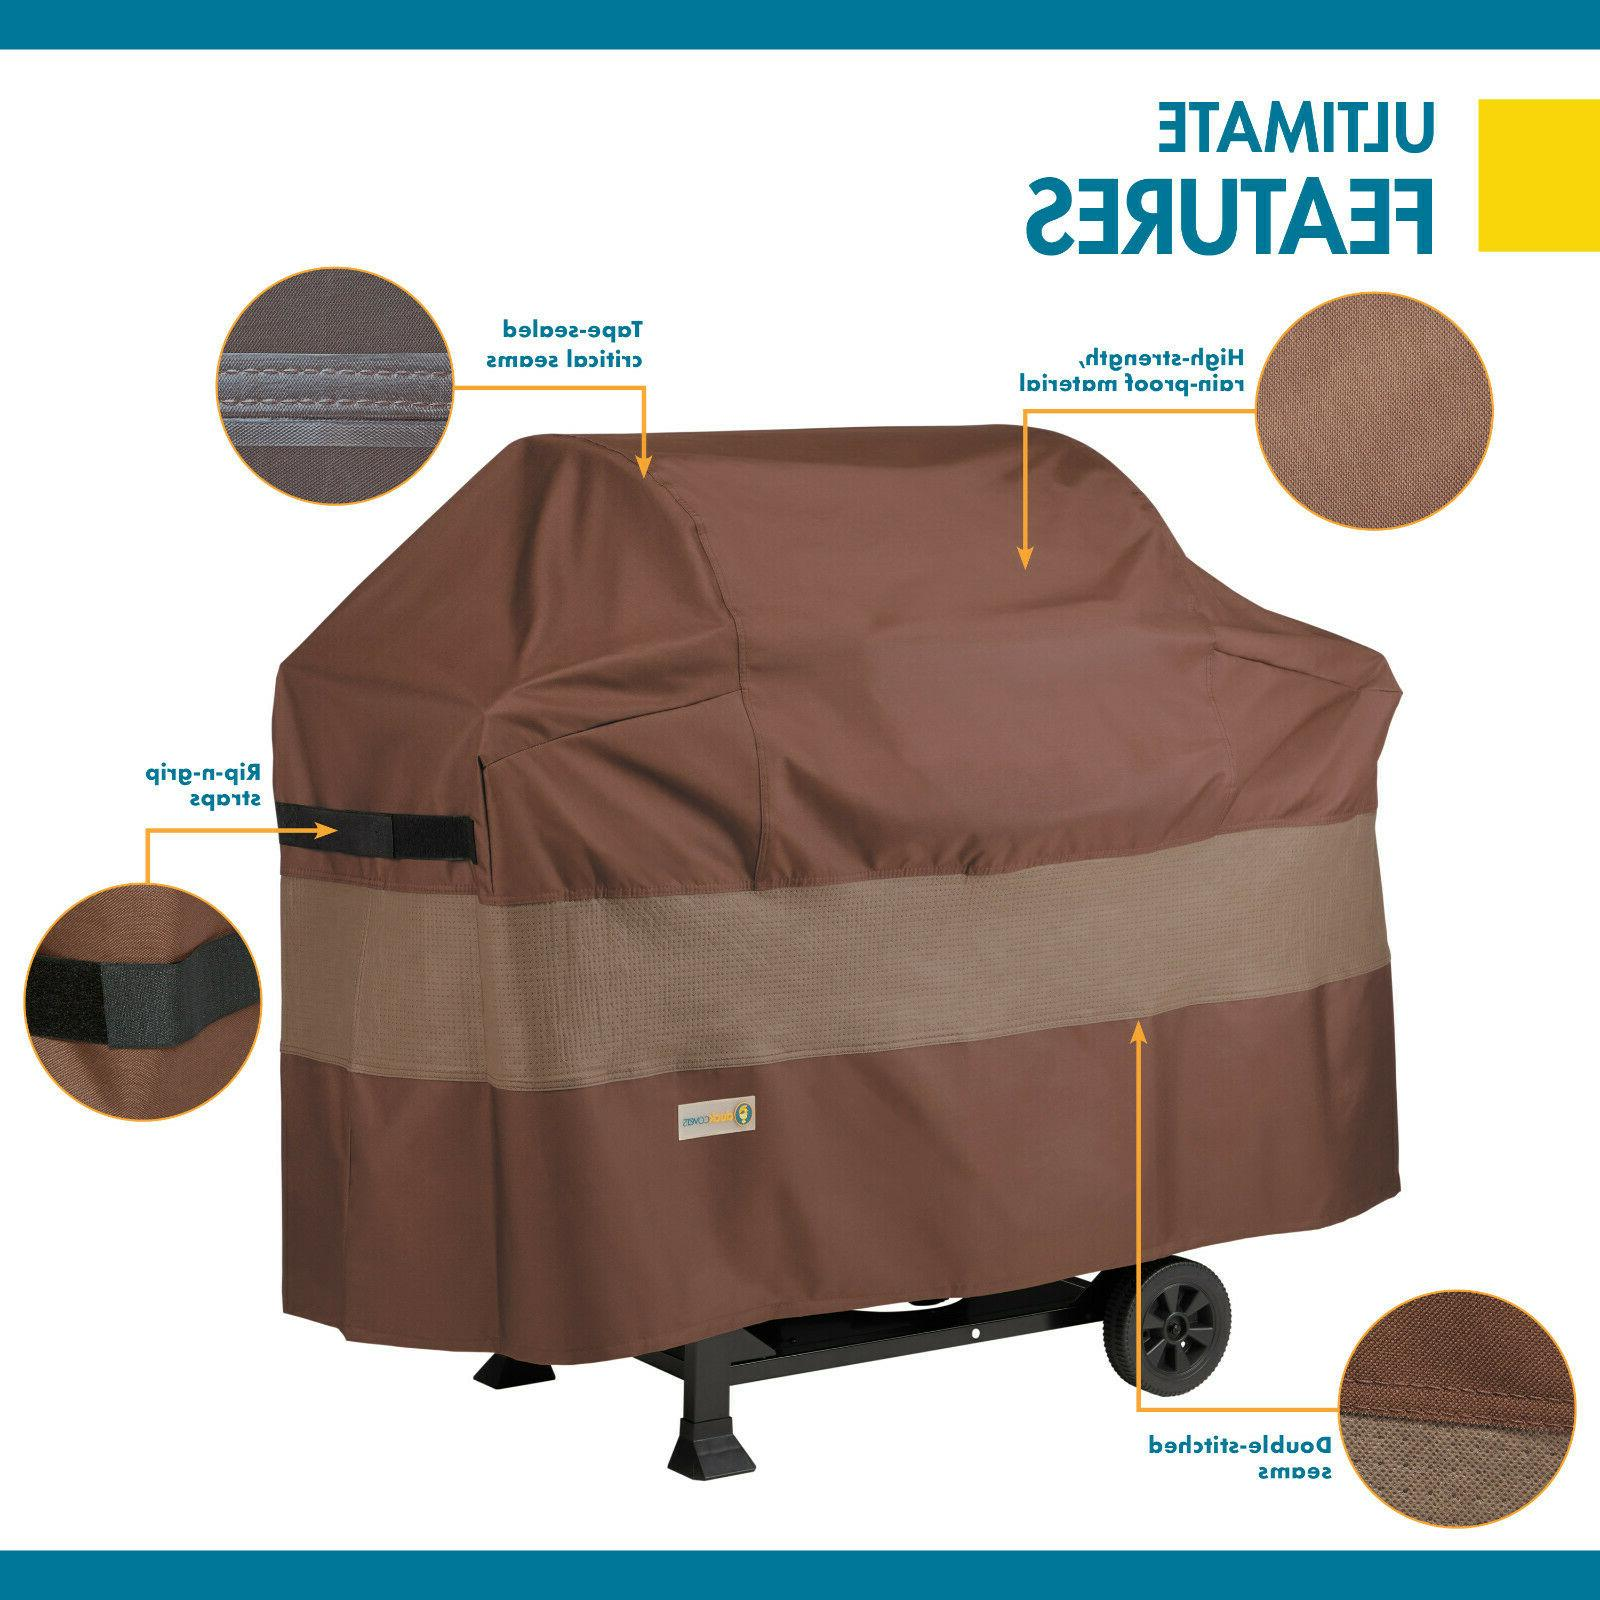 Duck Covers Ultimate Barbecue Grill Cover,